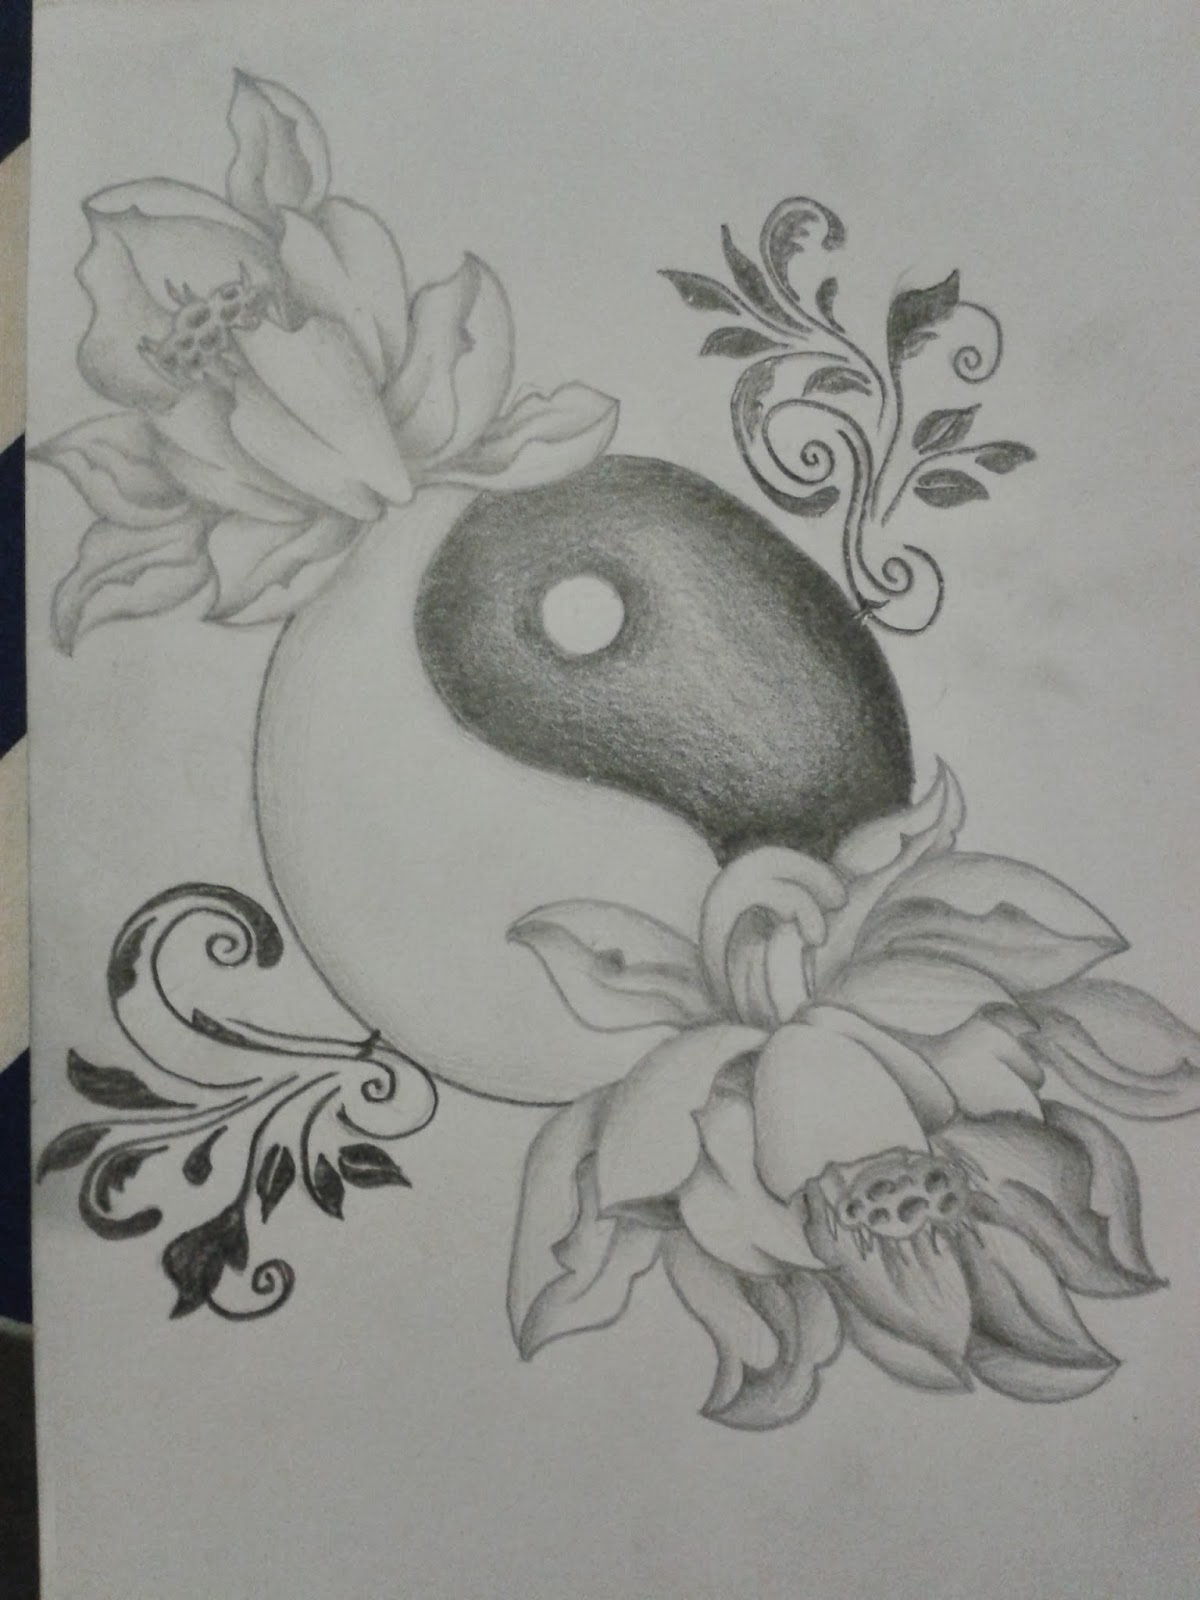 R3dwall art lotus floweryin yang tattoo design the customer wanted a lotus flower with a yin yang to represent the equality and faithfulness in her relationship izmirmasajfo